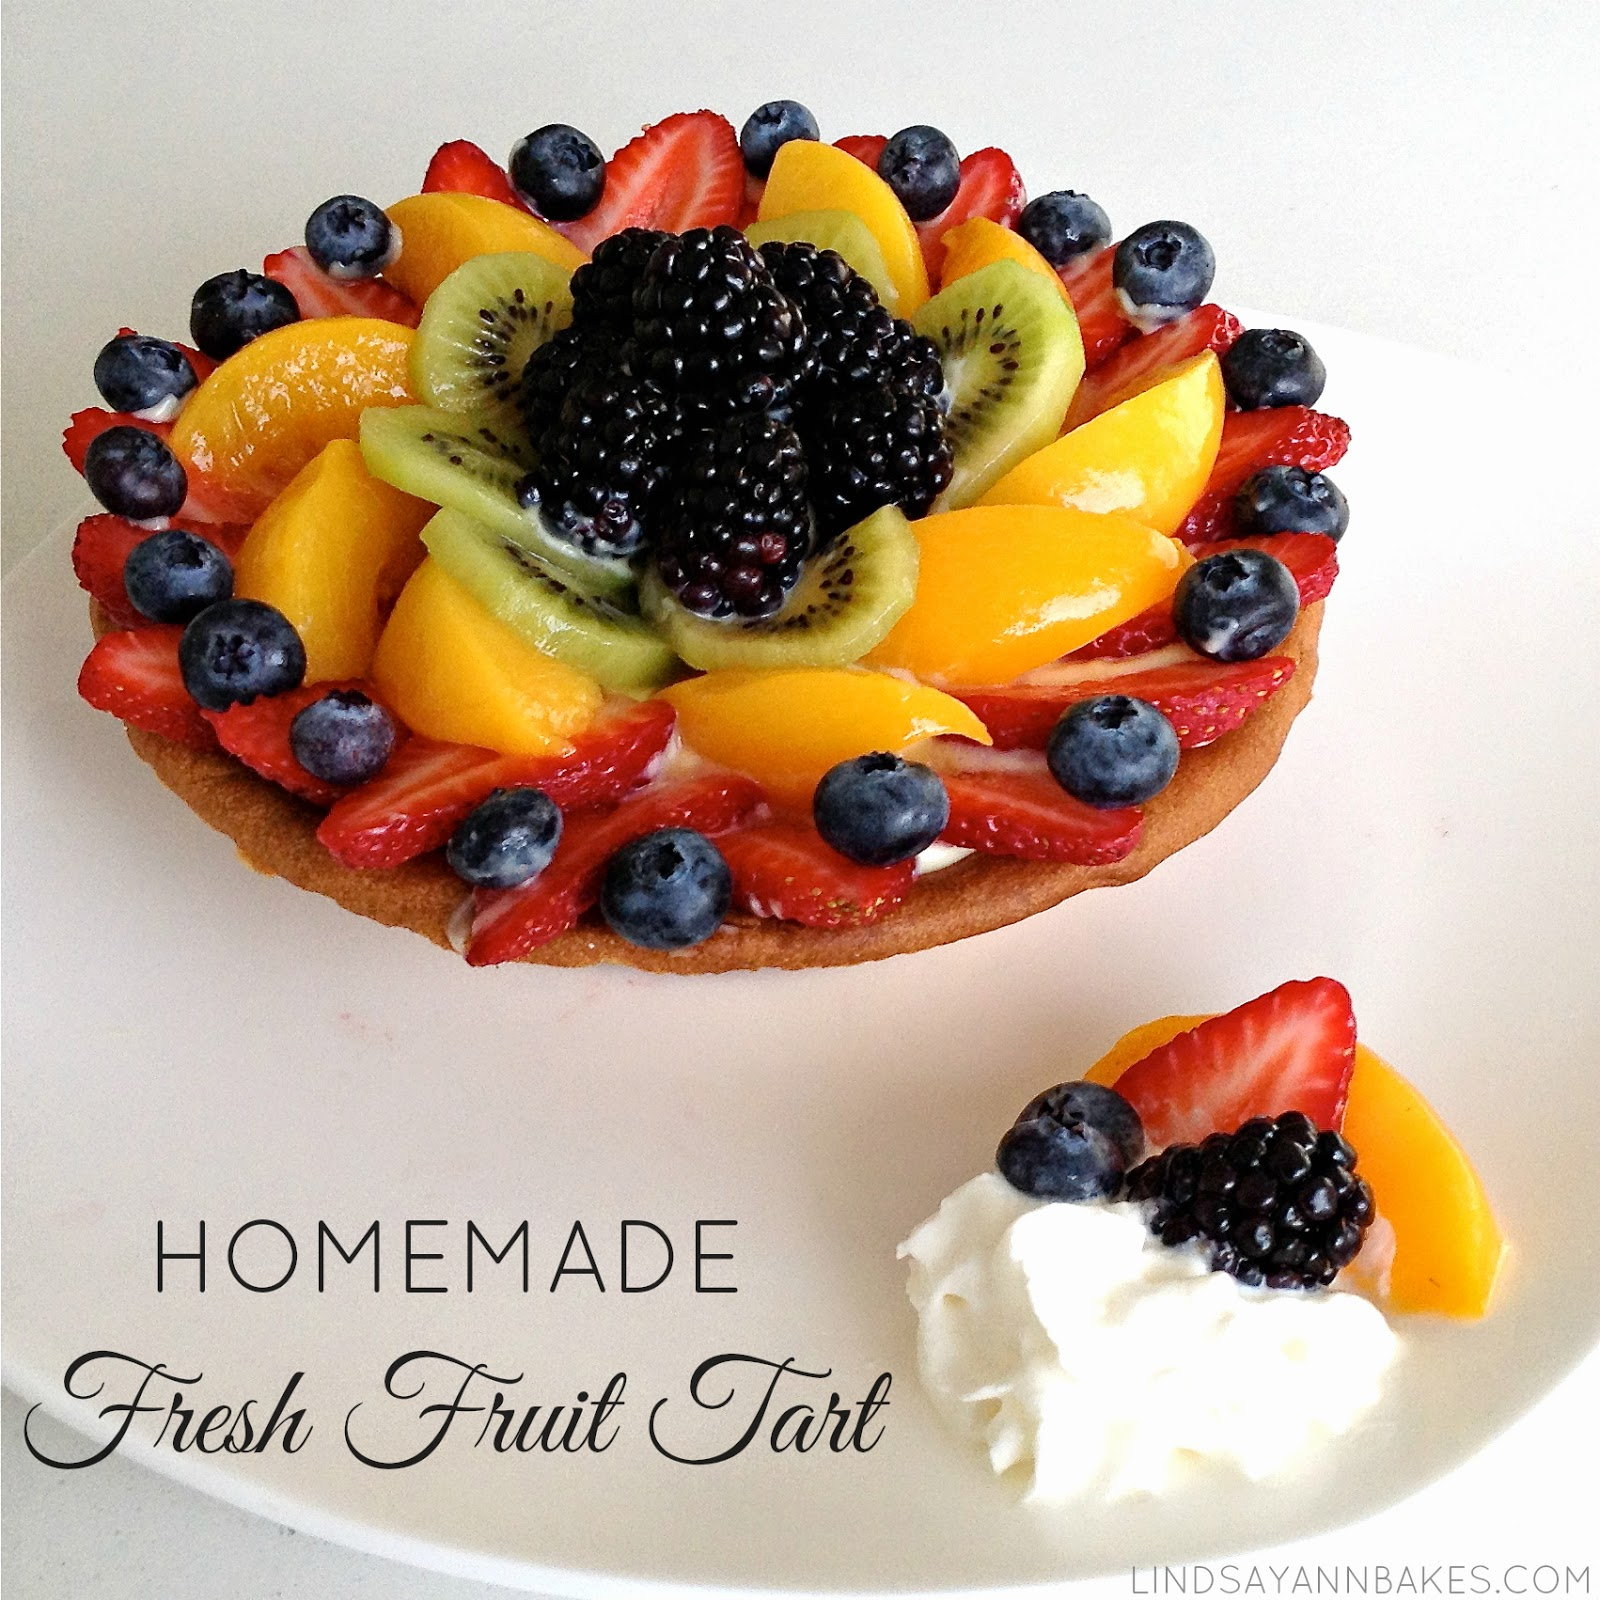 Homemade Fresh Fruit Tart With Vanilla Custard Pastry Cream.